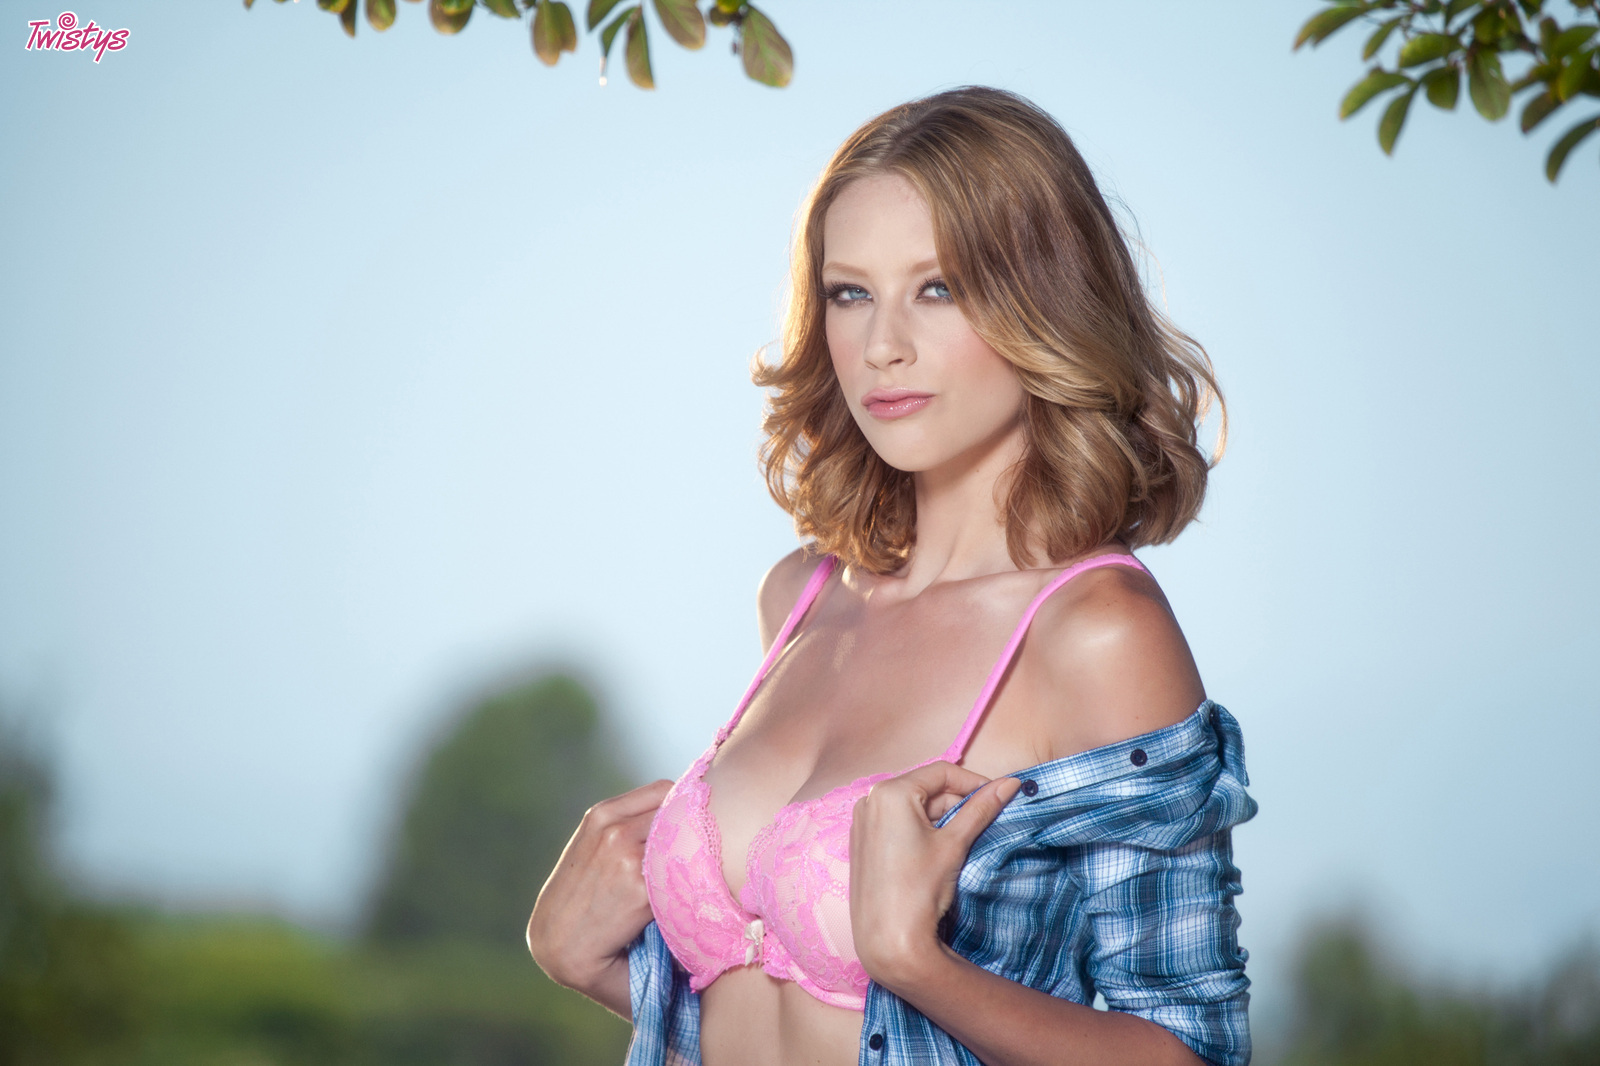 Horny At The Park.. featuring Anya Amsel | Twistys.com